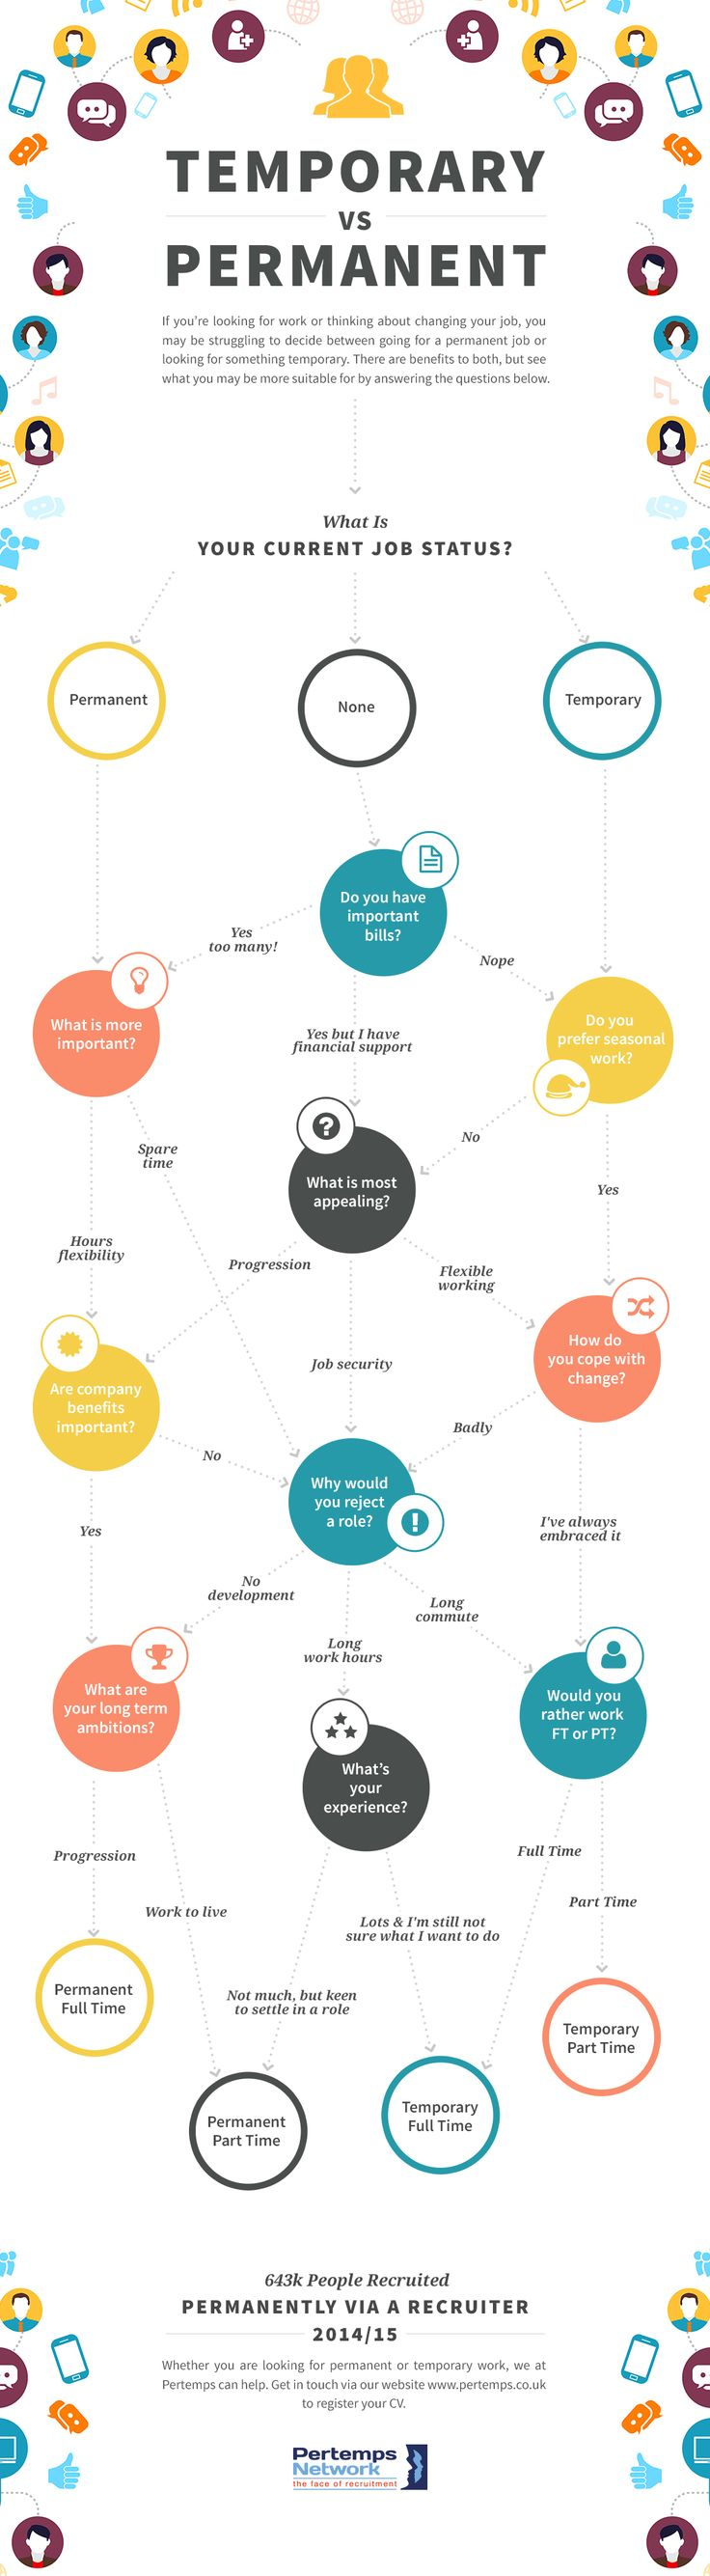 17 best images about education careers infographics covers several questions and by answering all of them yourself it will guide you to make a correct decision between temporary and permanent job